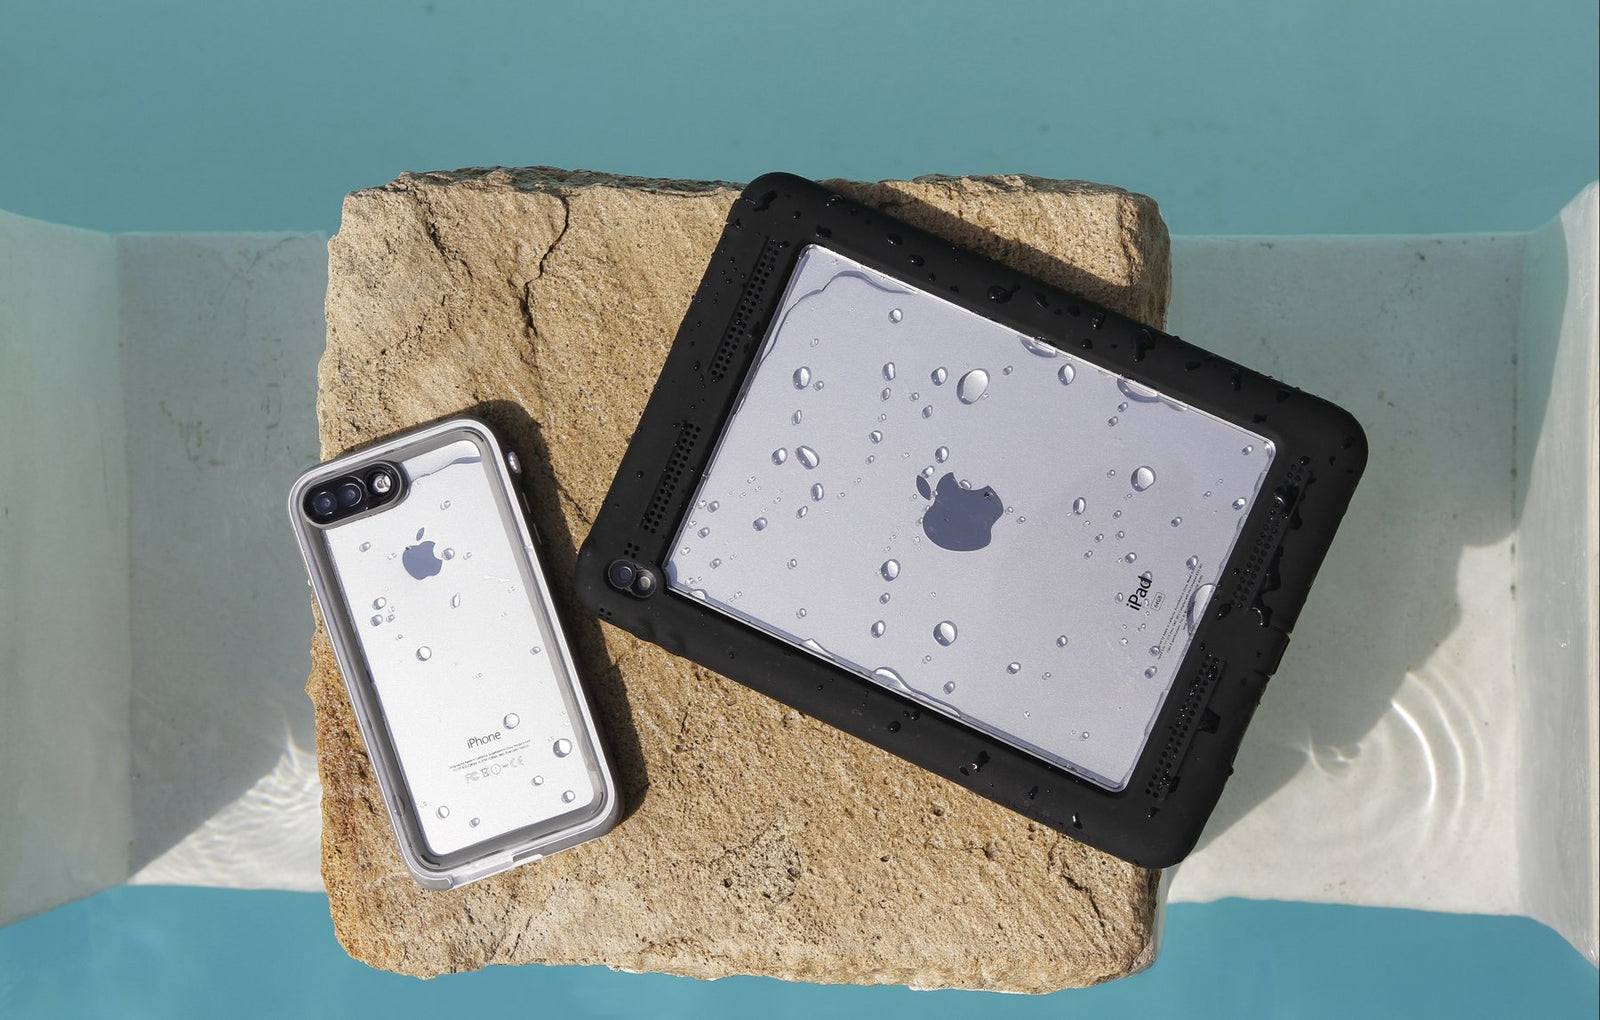 separation shoes cf296 15ce5 Catalyst - World's Highest Rated Waterproof iPhone Case - Mac Addict